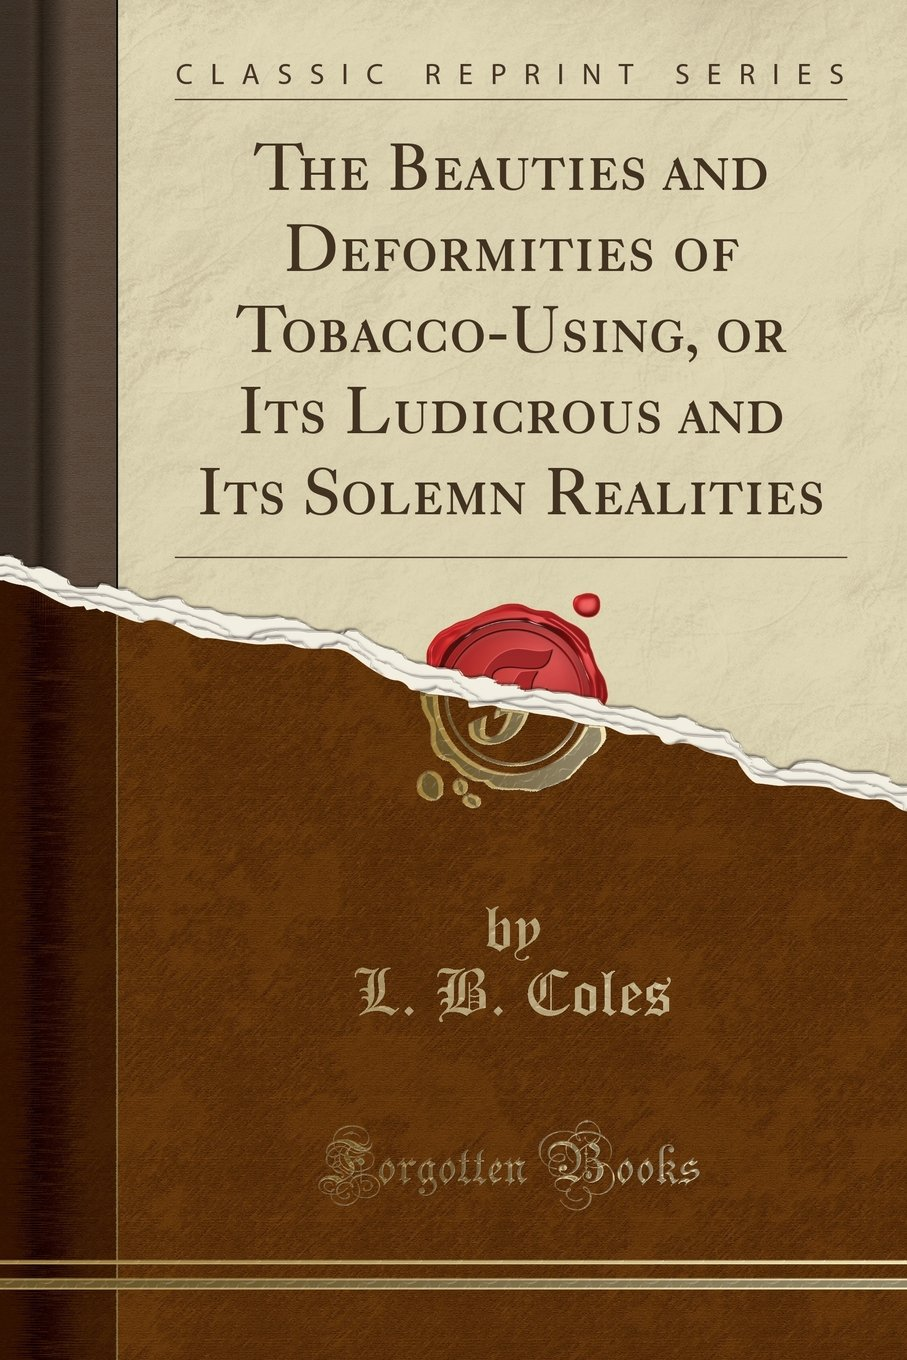 Download The Beauties and Deformities of Tobacco-Using, or Its Ludicrous and Its Solemn Realities (Classic Reprint) PDF